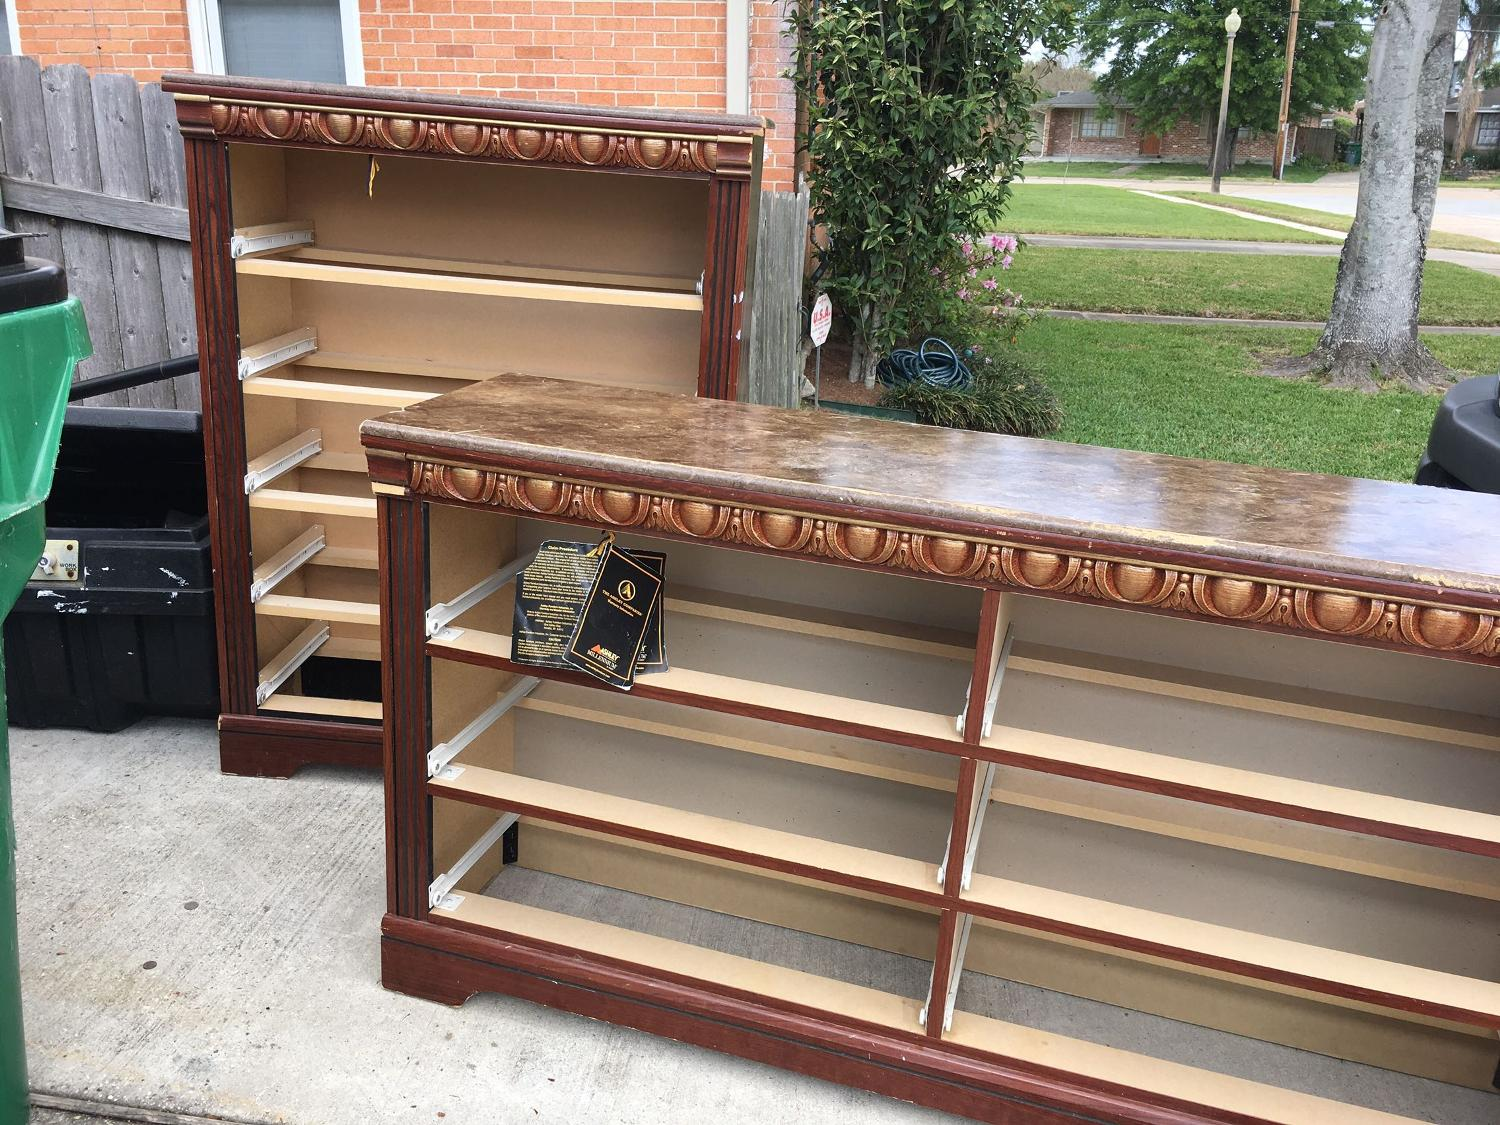 Find More Matching Ashley Dressers For Sale At Up To 90 Off Metairie La